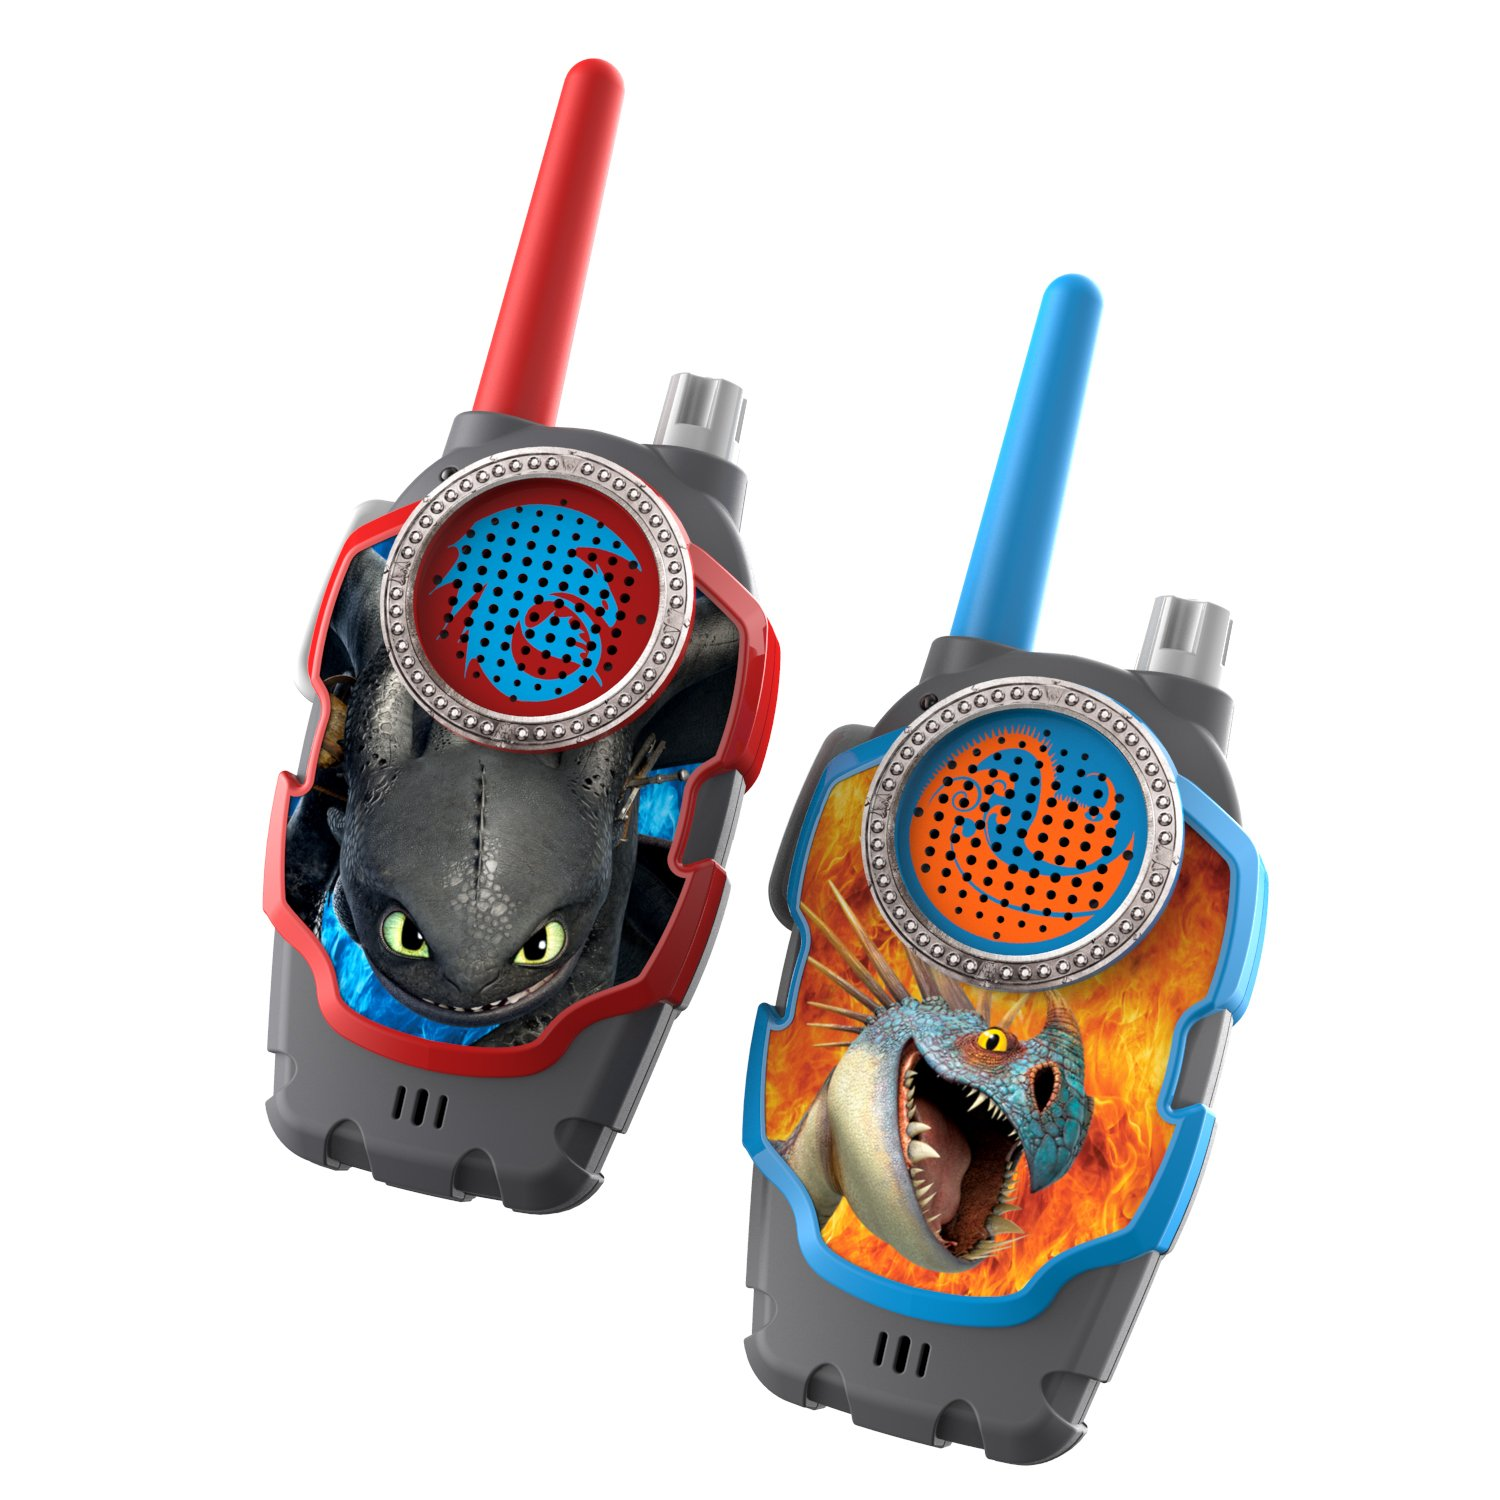 How to Train Your Dragons 2 FRS Walkie Talkies by How to Train Your Dragons 2 (Image #1)